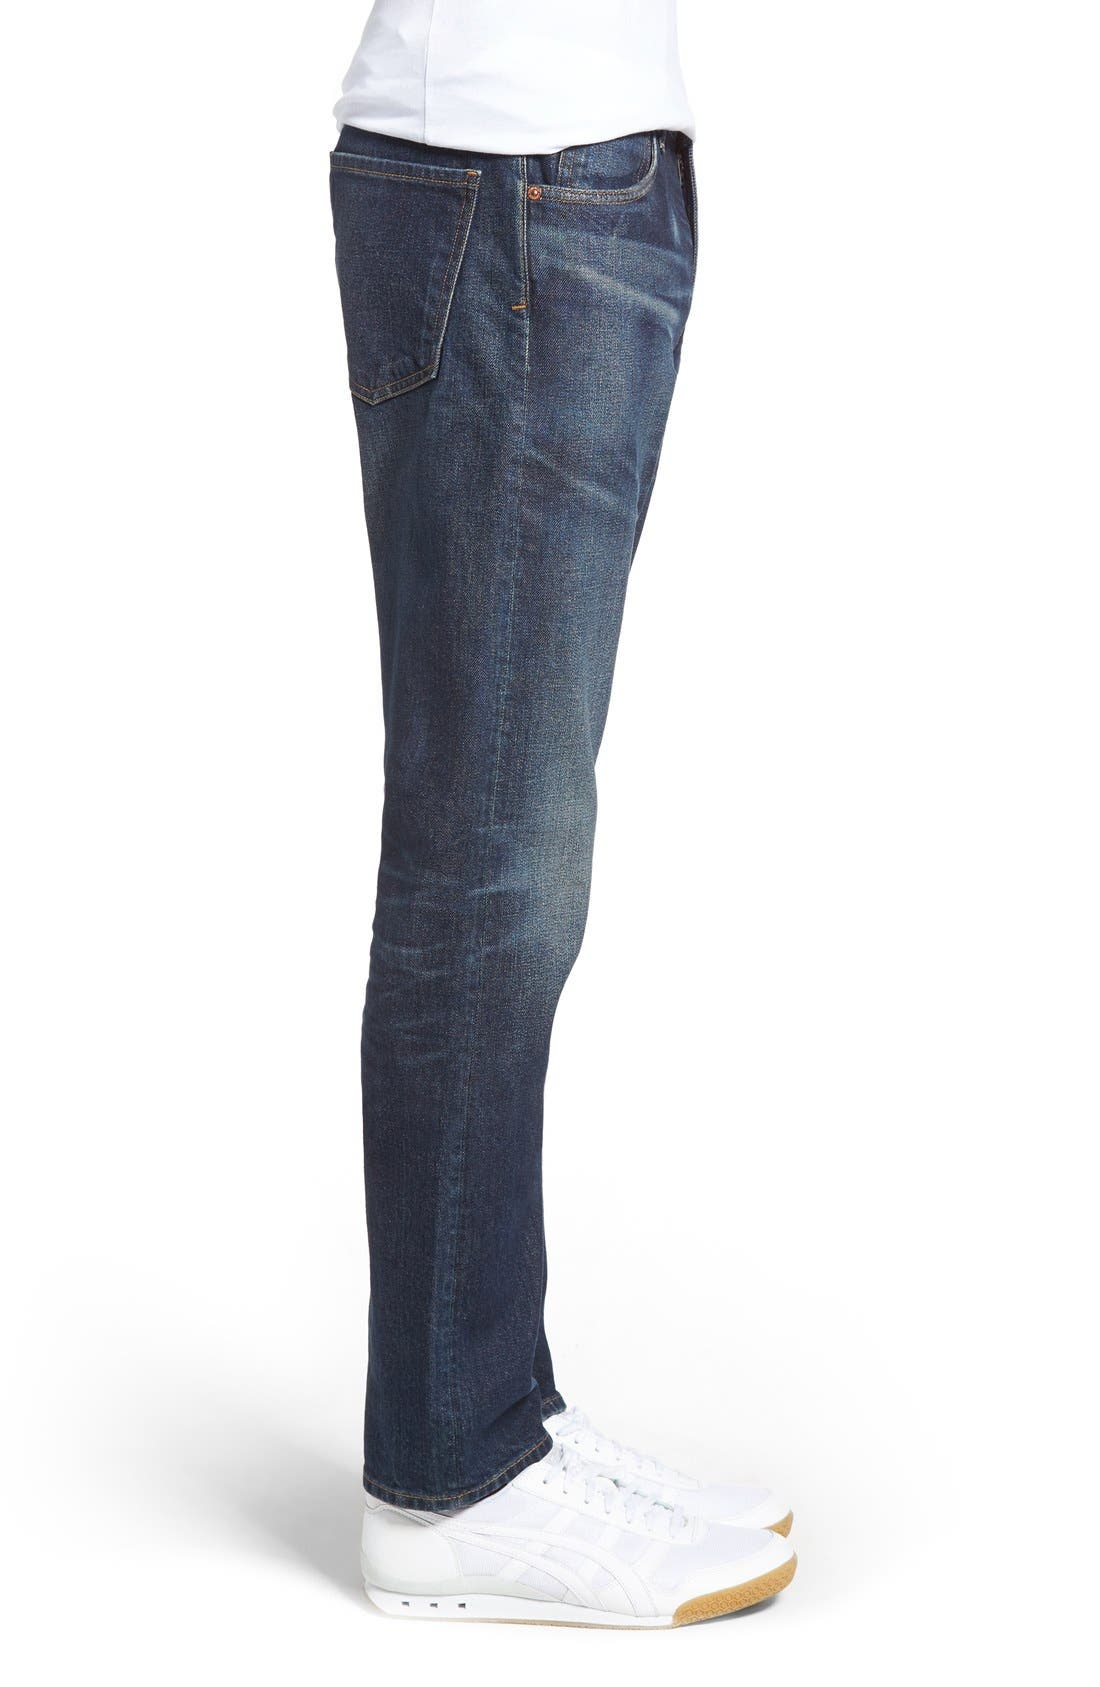 Bowery Slim Fit Jeans,                             Alternate thumbnail 3, color,                             Hesperia